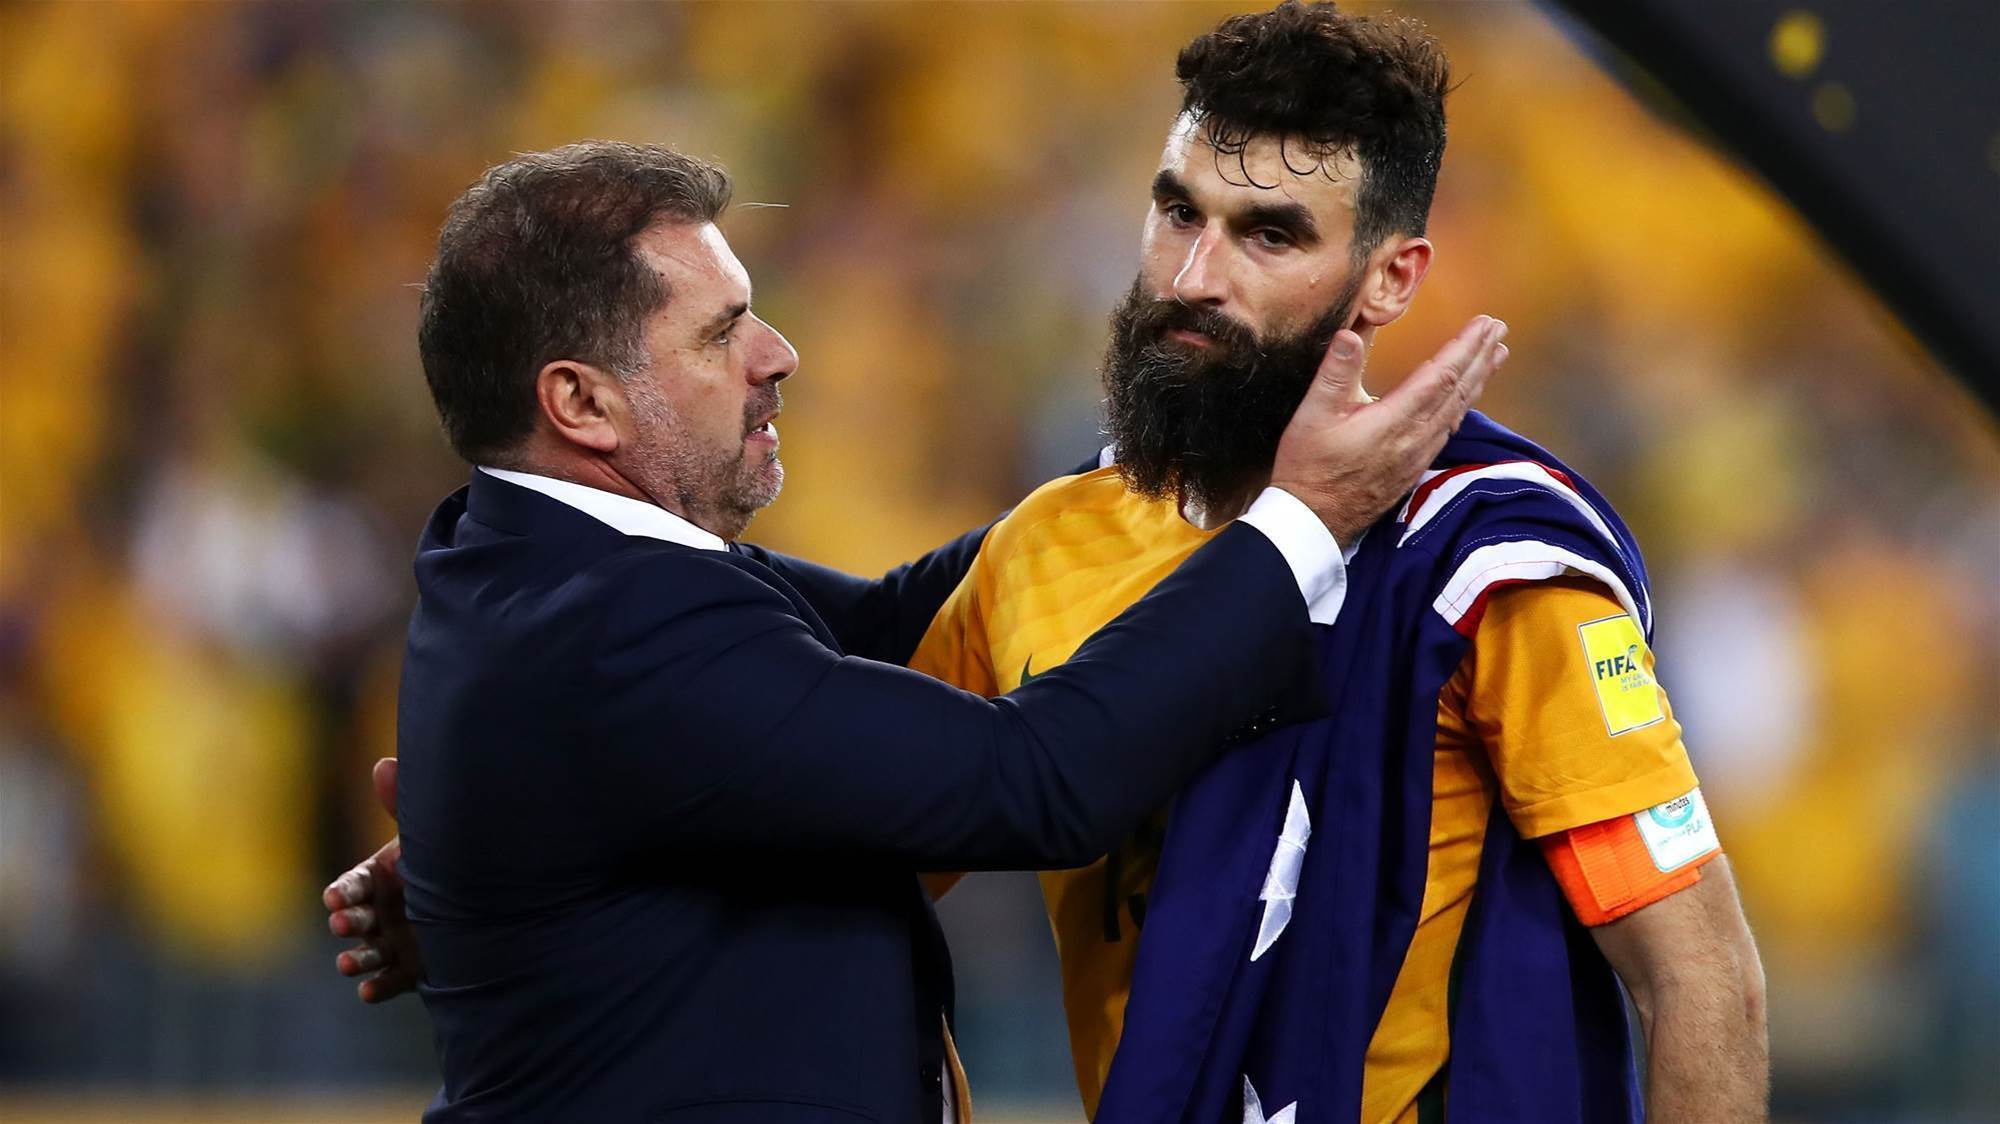 Australia kept guessing as Ange 'enjoys' the moment